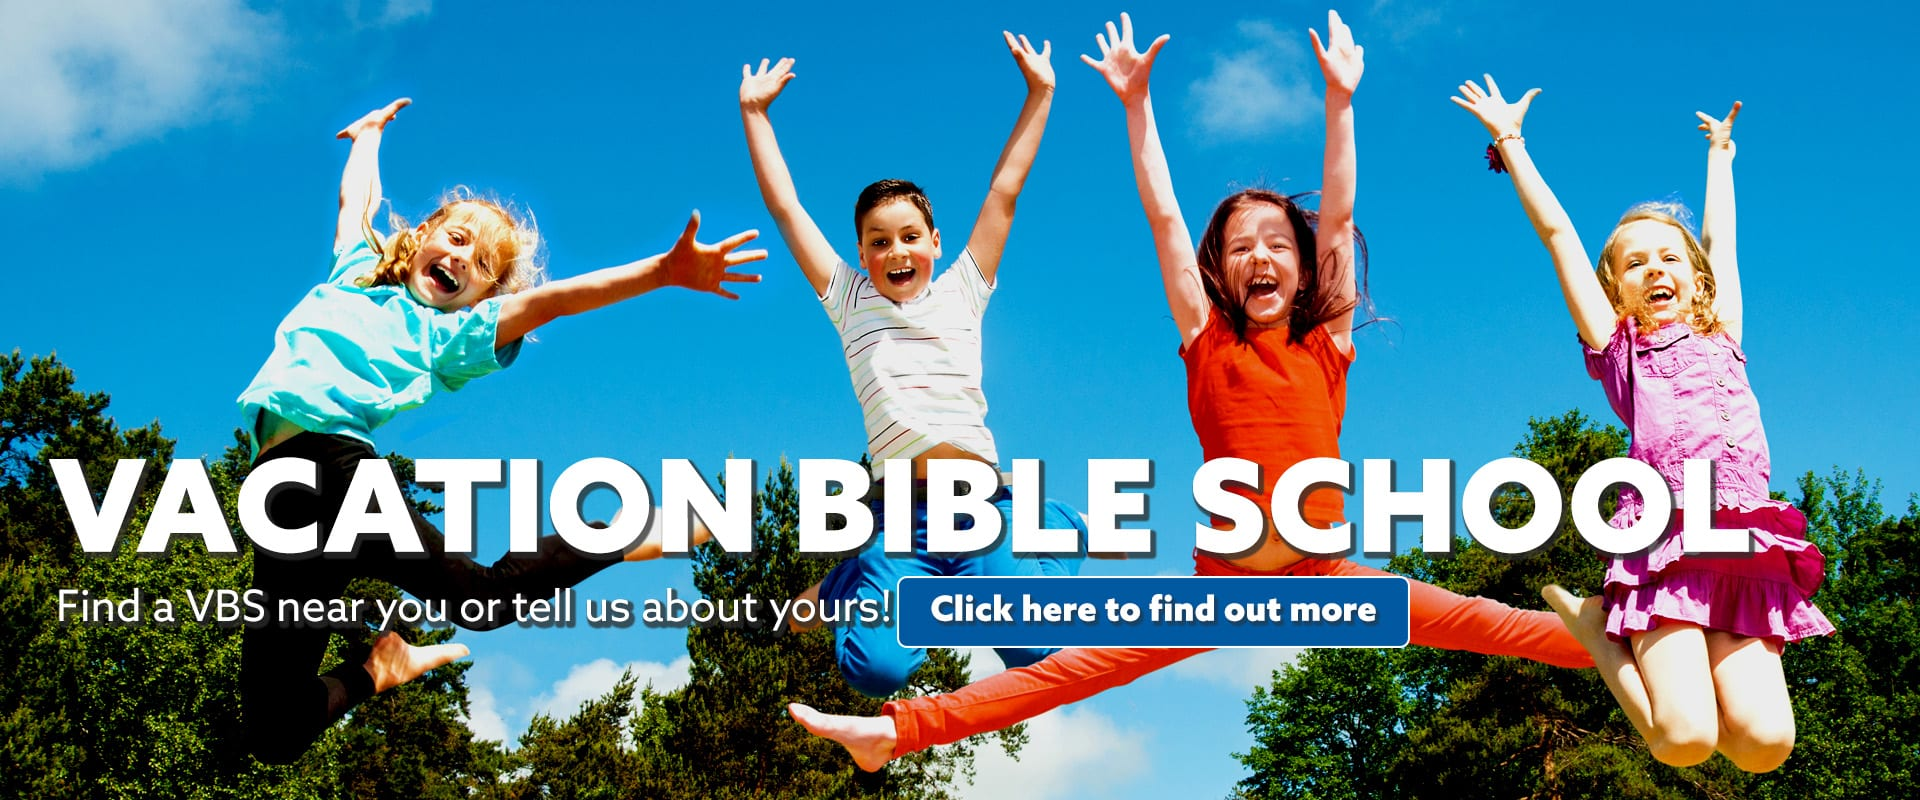 Vacation_Bible_Schools_KGLY